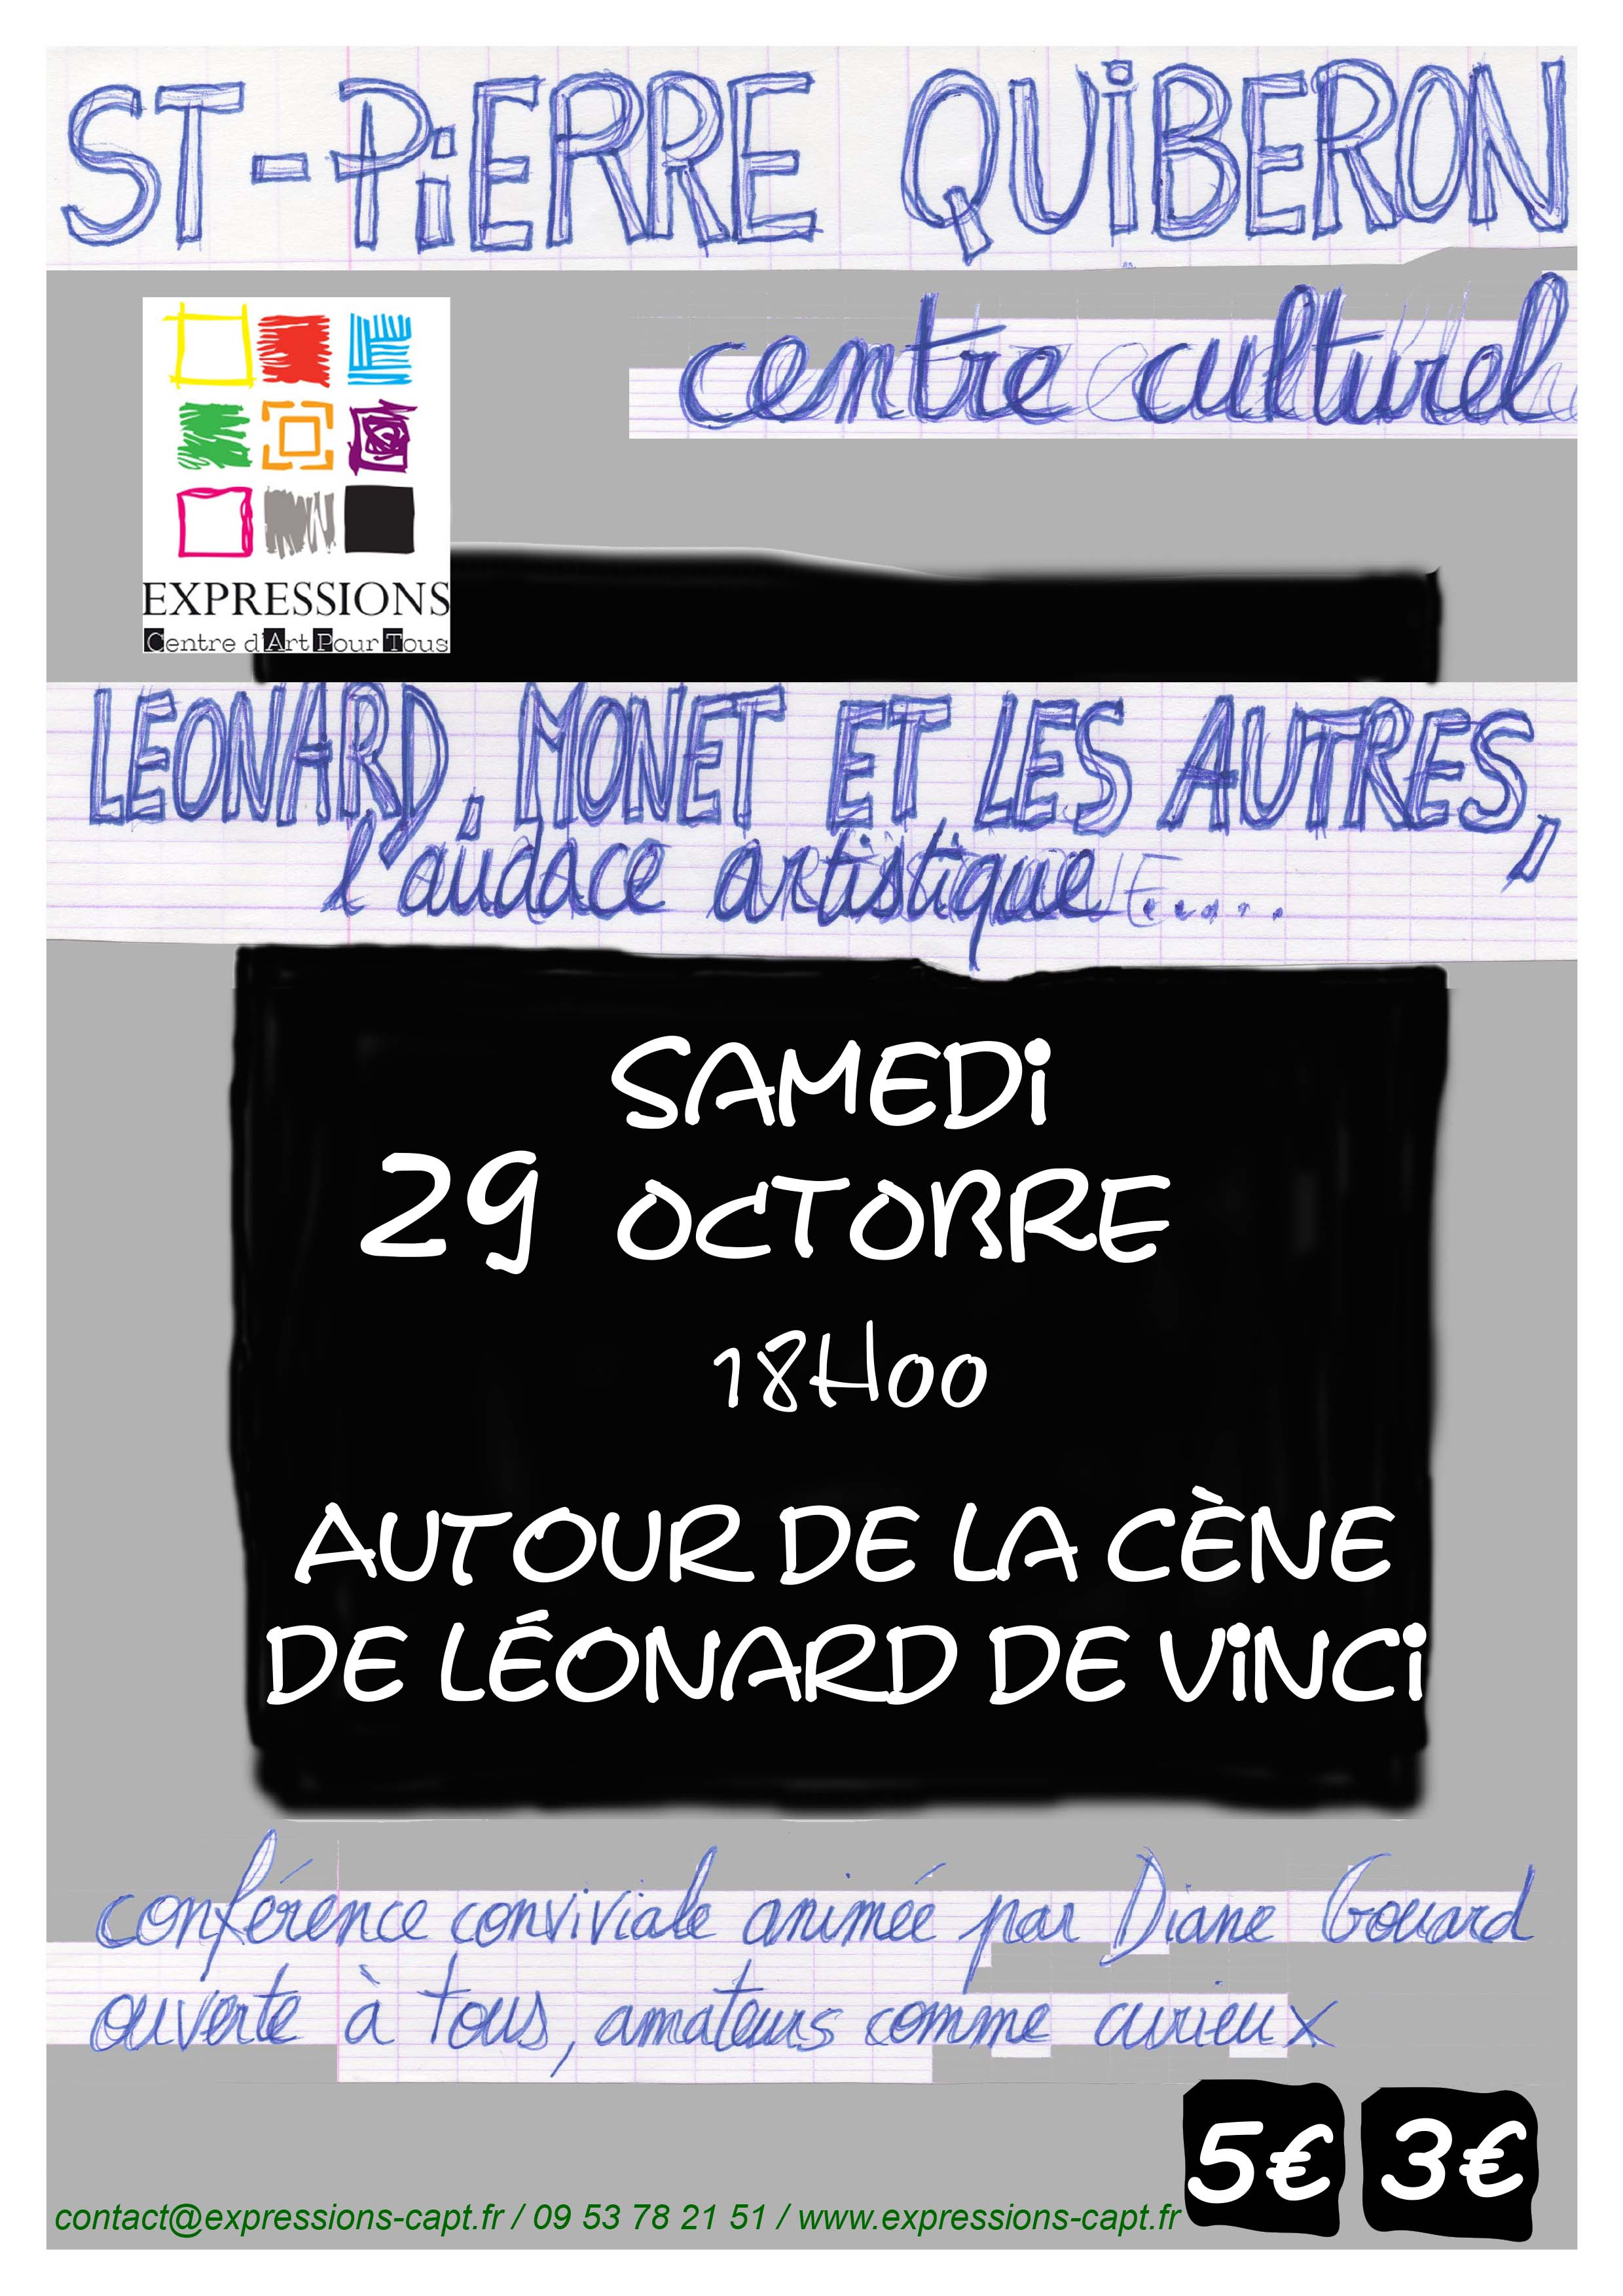 2016 10 29 Affiche Confrence